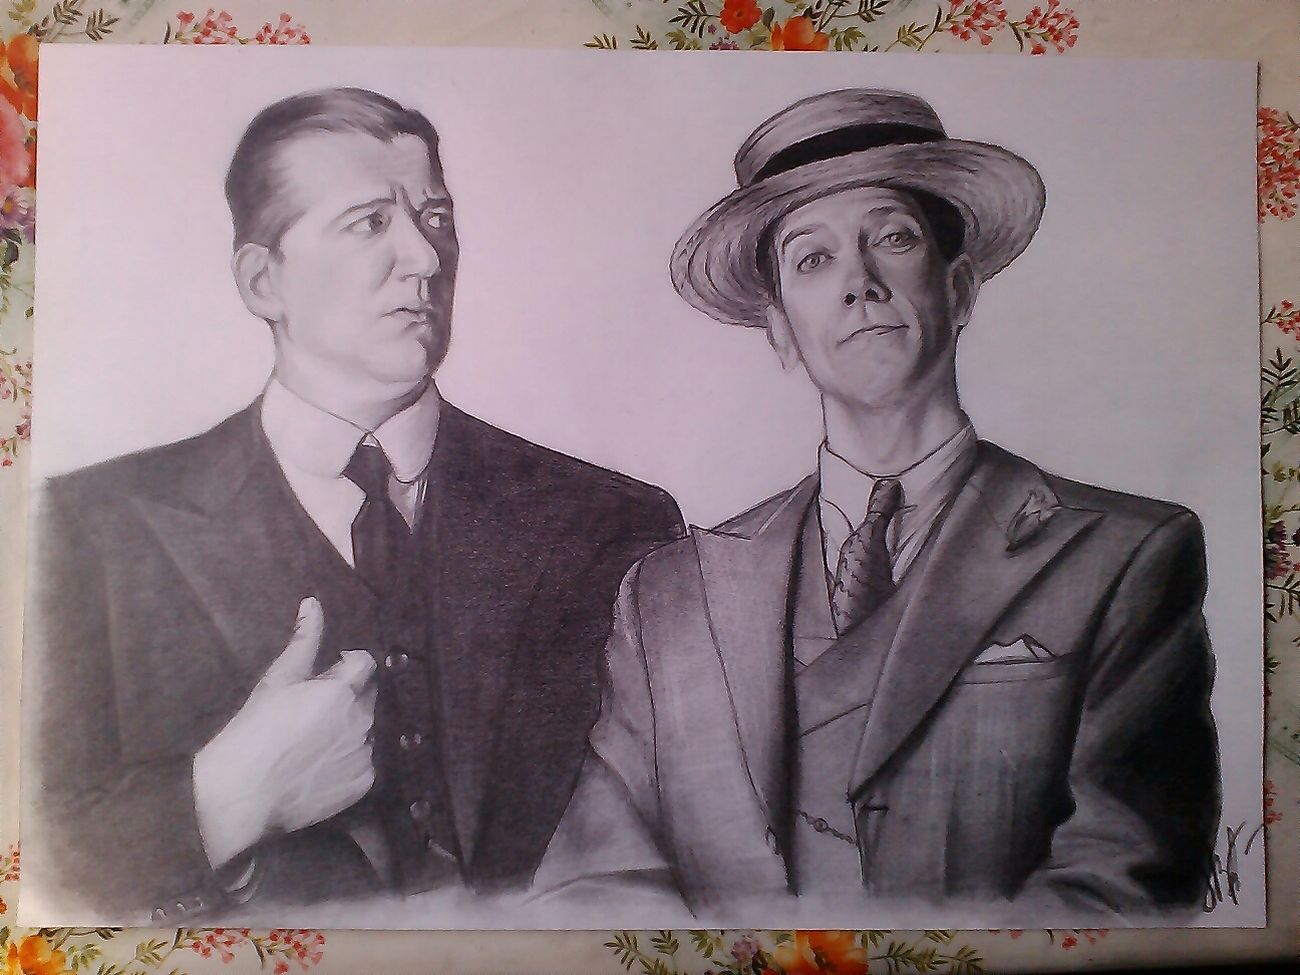 Jeeves And Wooster Stephen Fry Hugh Laurie Art Сегодняшнее мое.